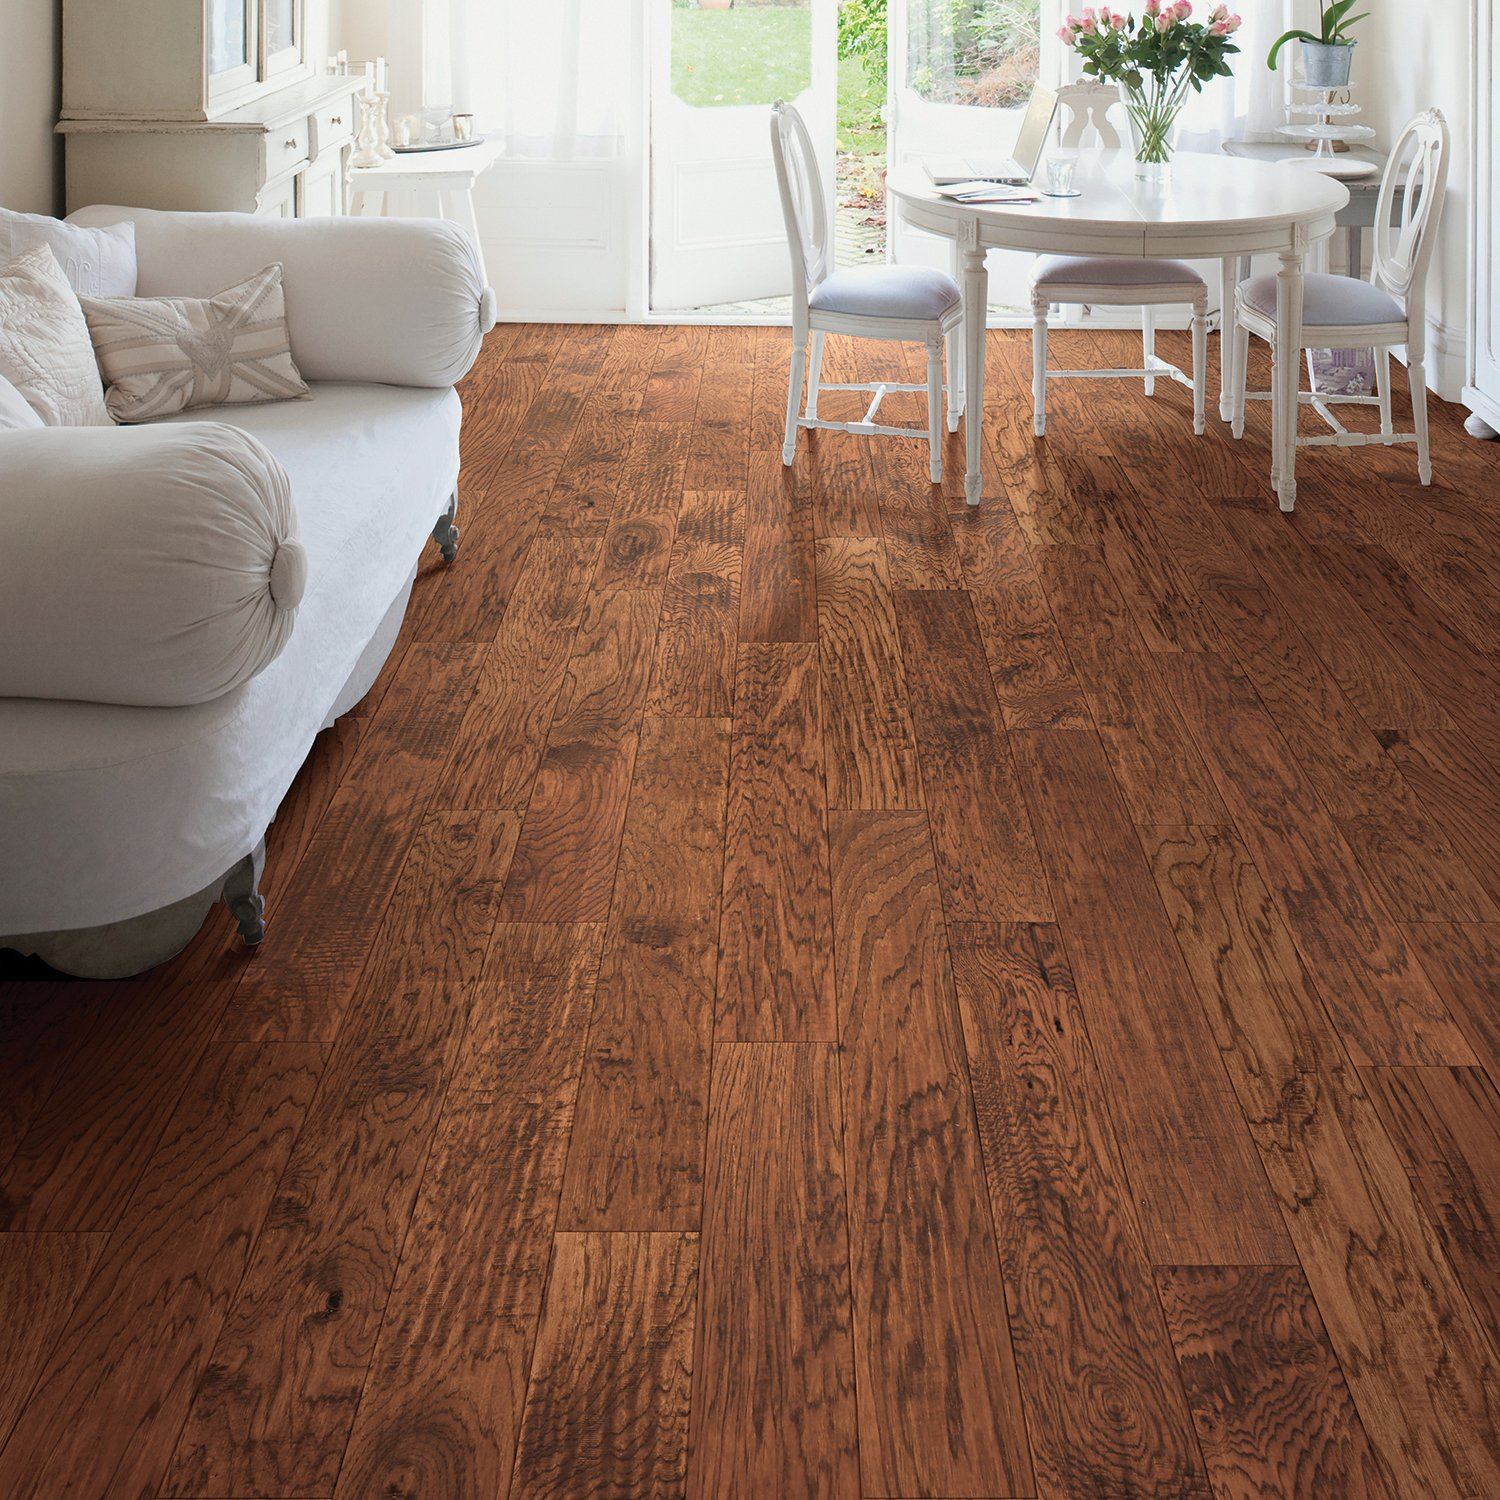 Kraus Flooring Halton Hickory Collection Chestnut Hickory